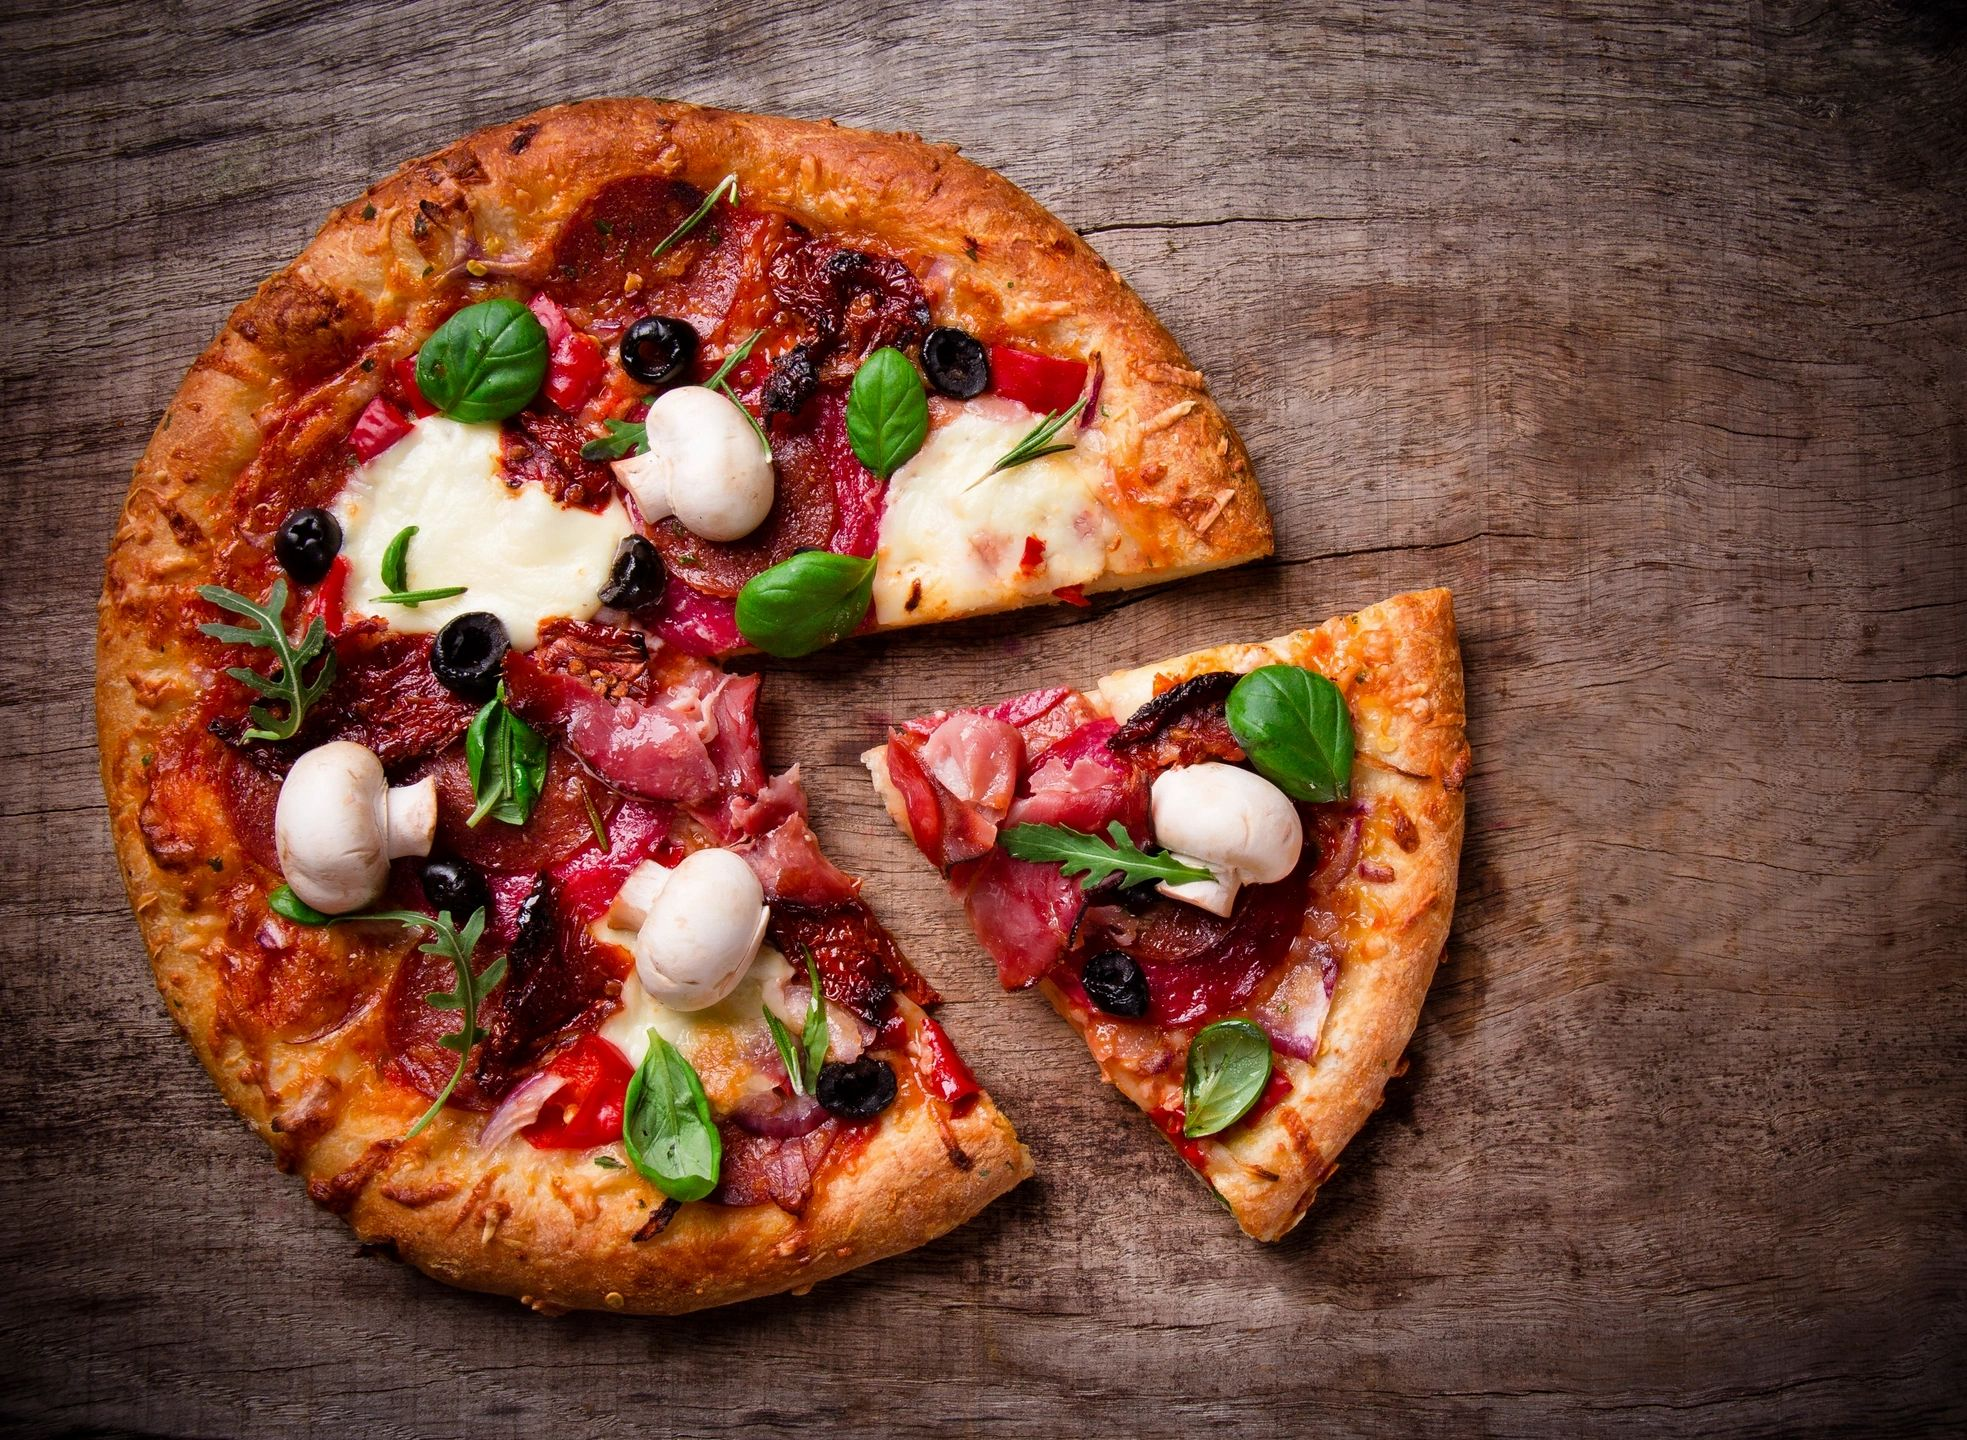 Cheese and meat pizza